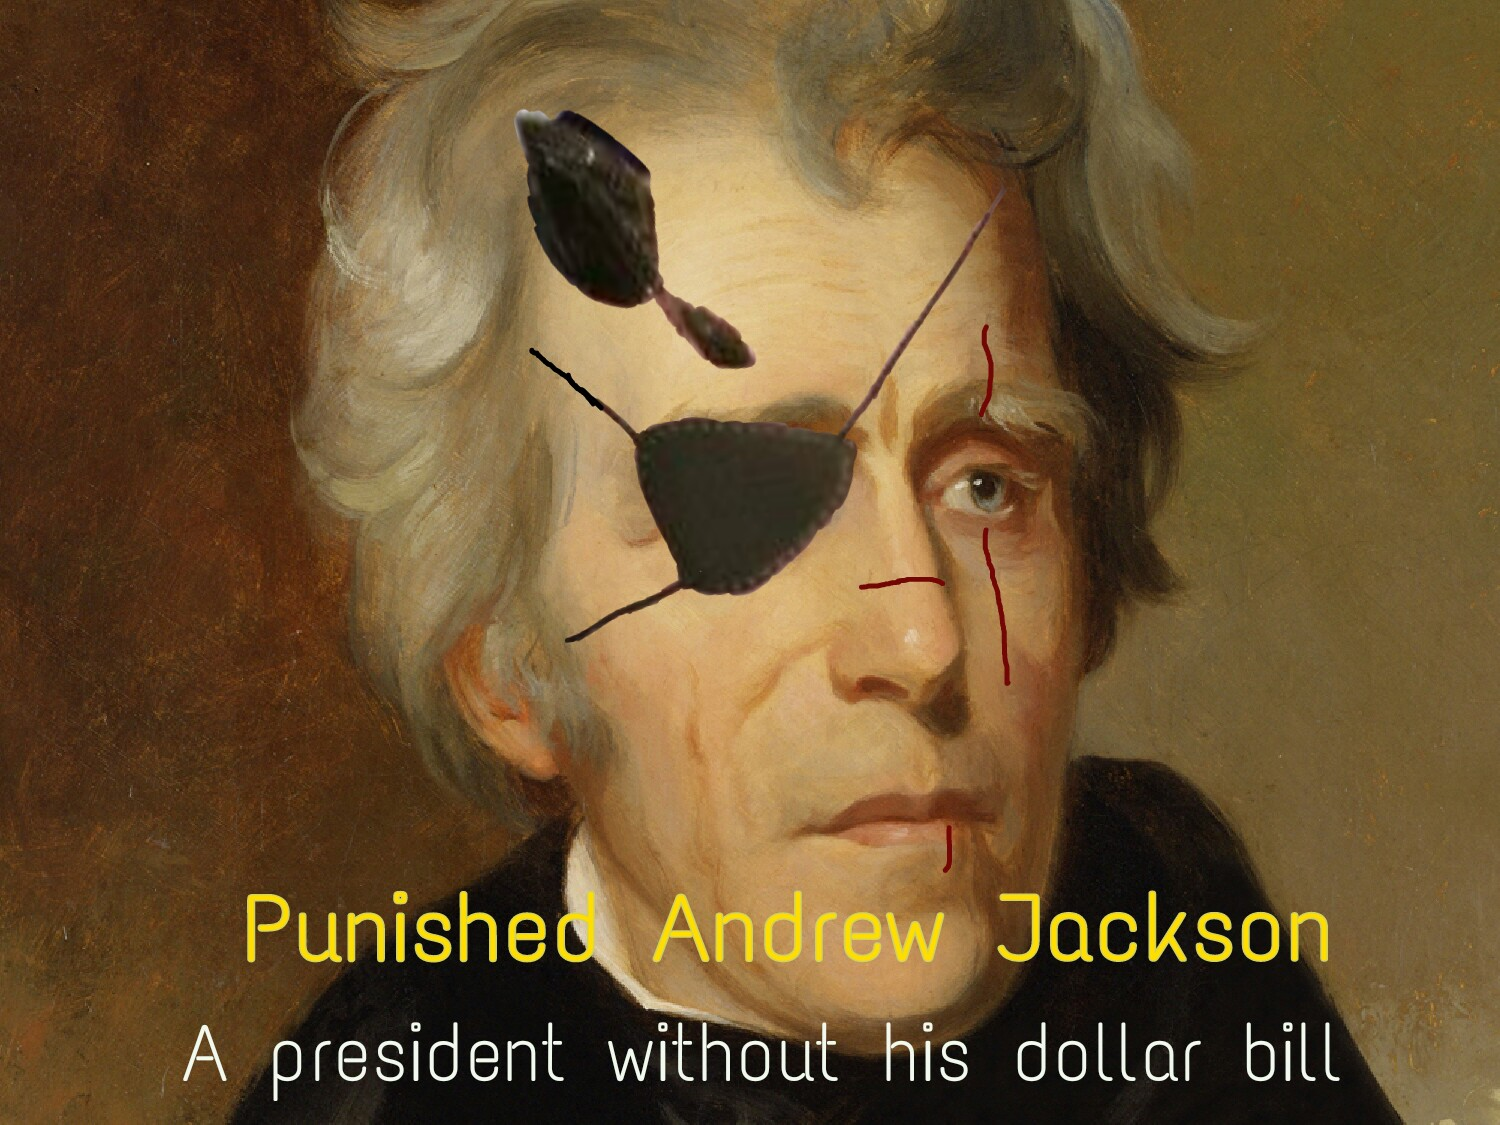 97c andrew jackson punished snake know your meme